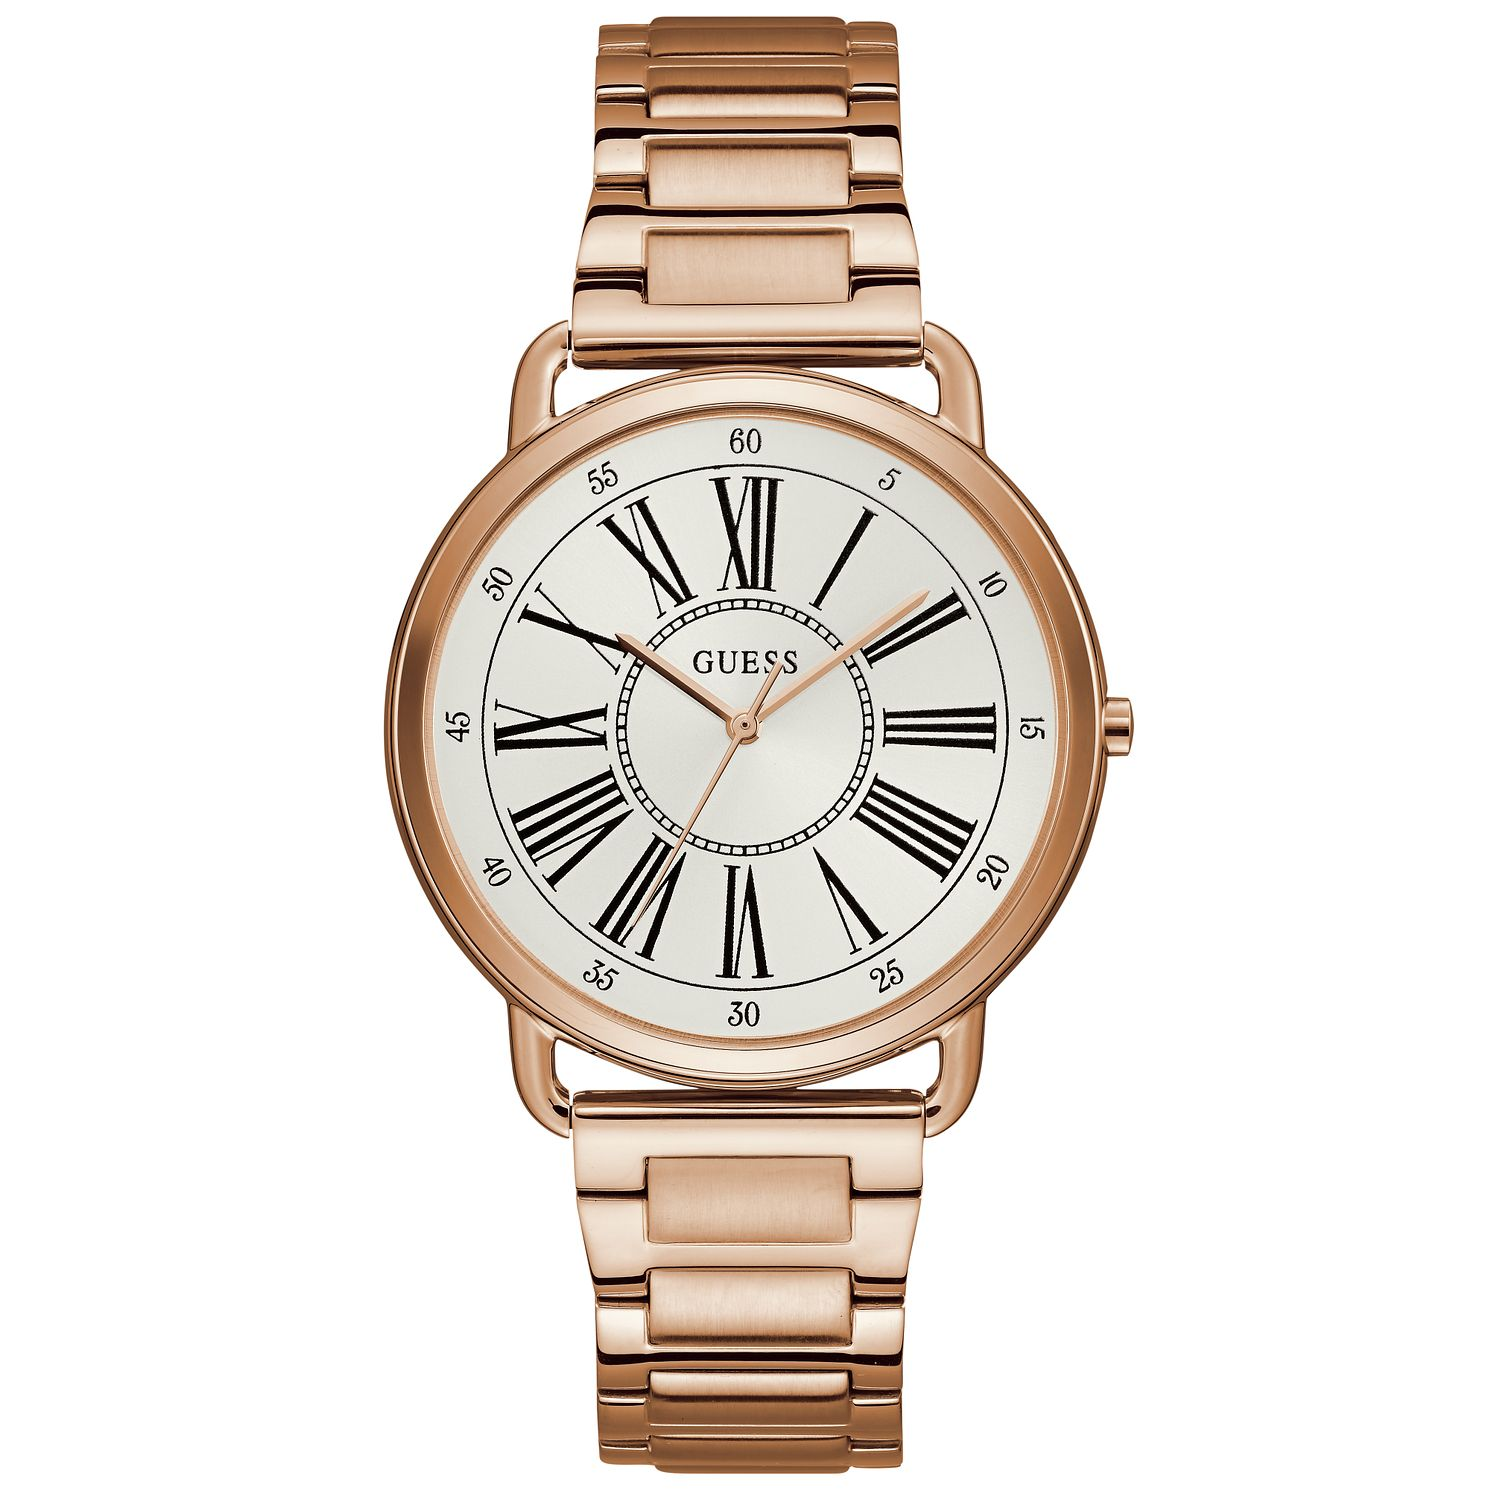 Guess Ladies' Rose Gold Tone Bracelet Watch - Product number 9654771